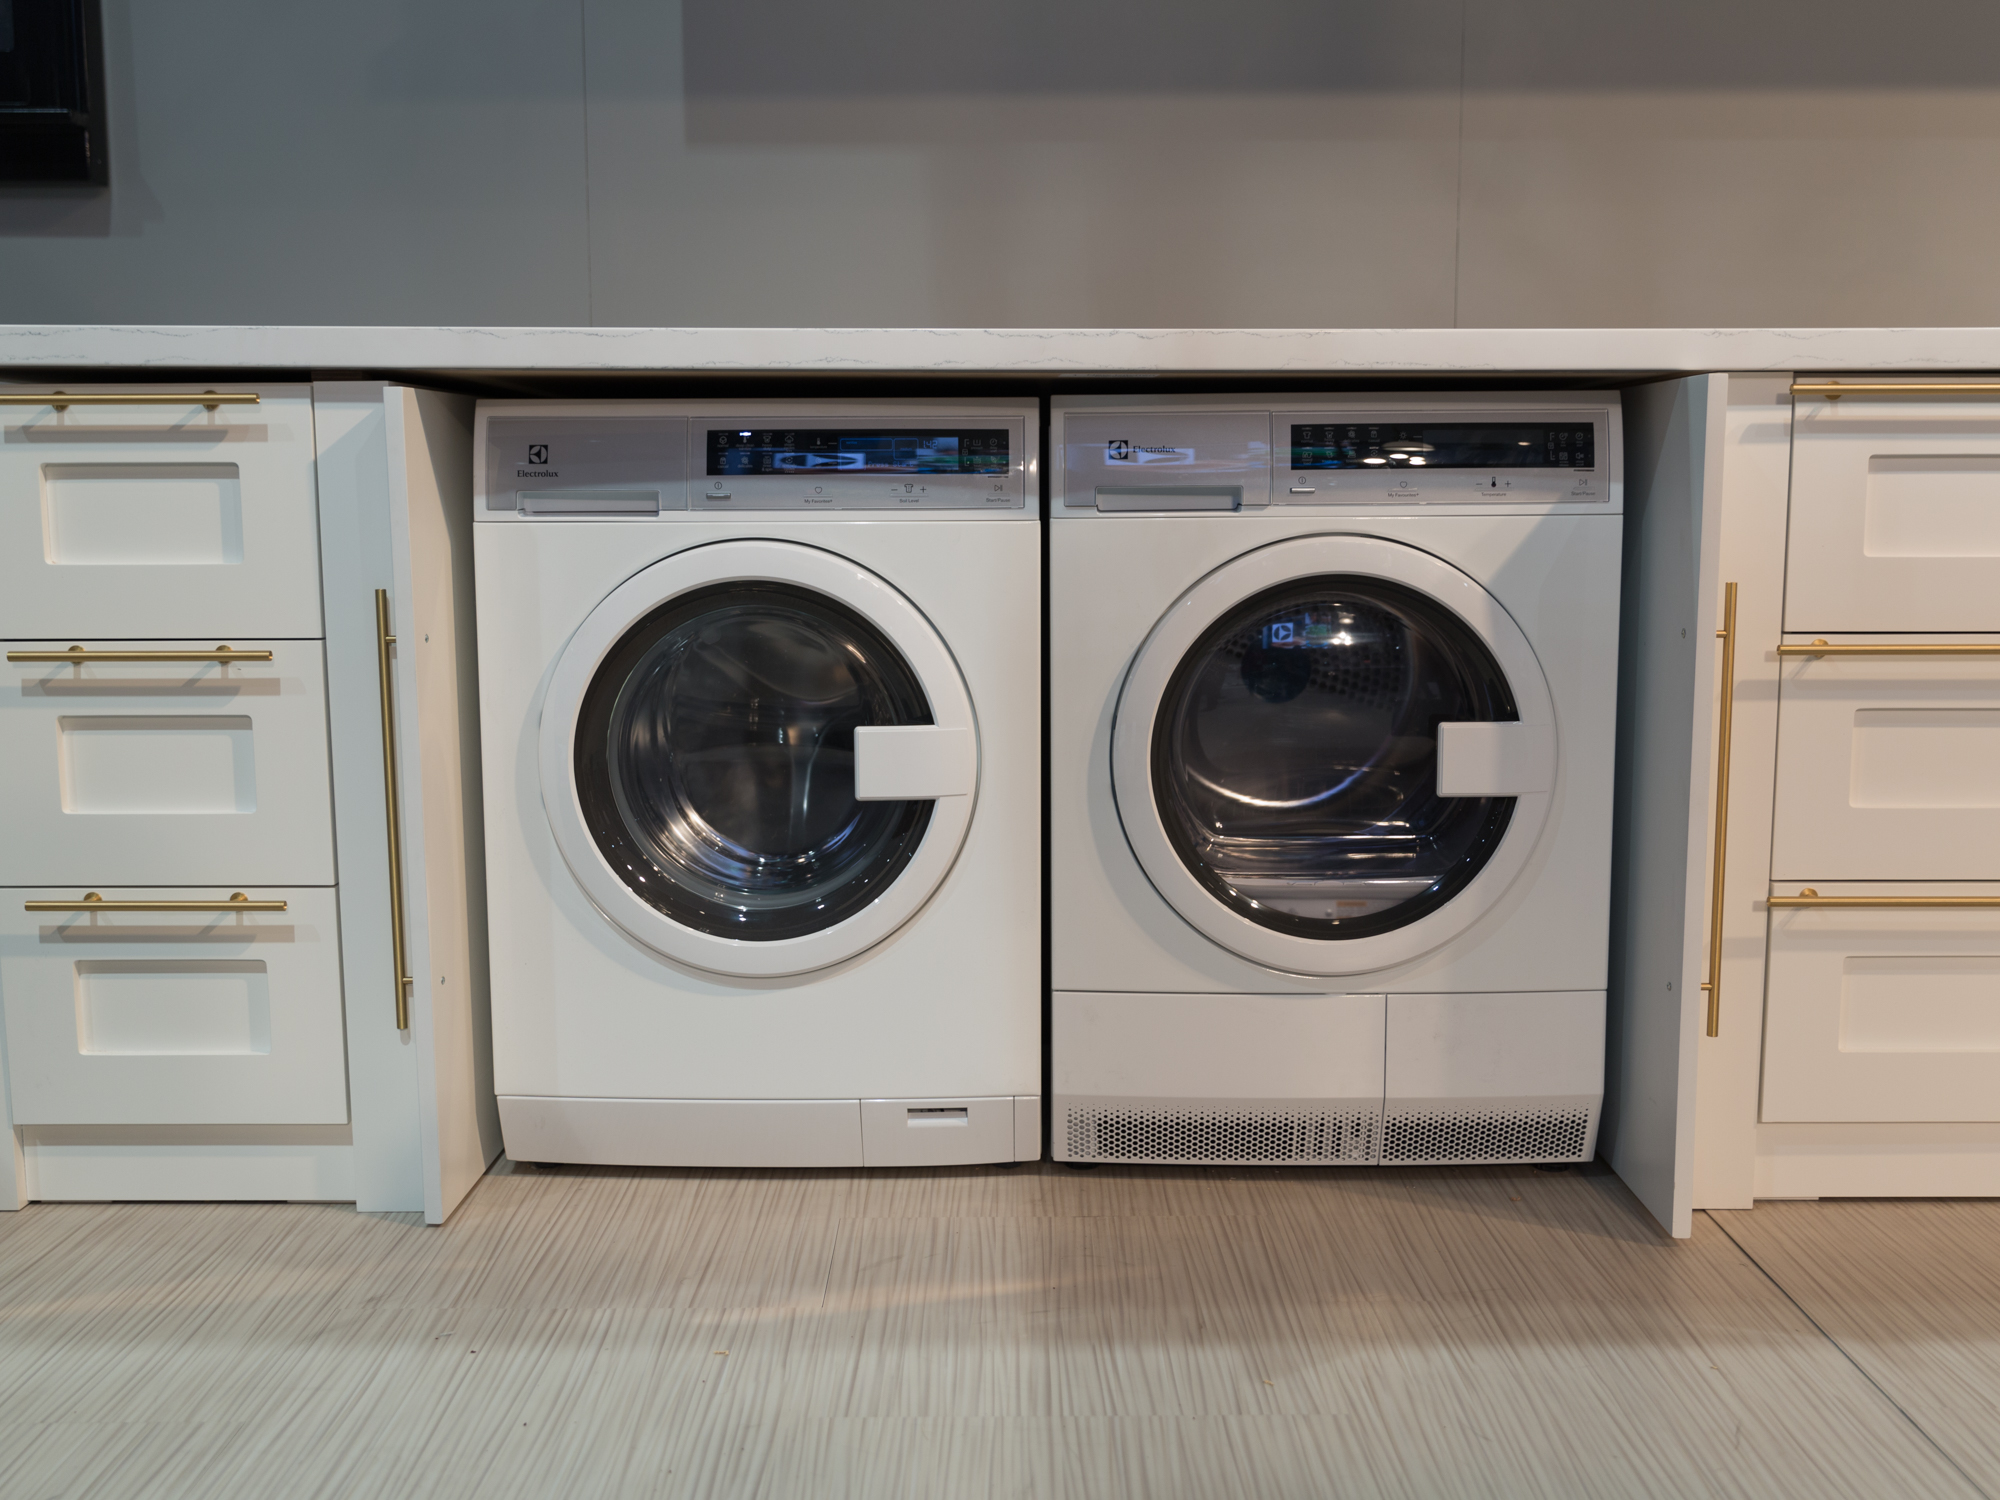 Washer and dryer sets for small spaces american hwy - Washing machine for small spaces gallery ...